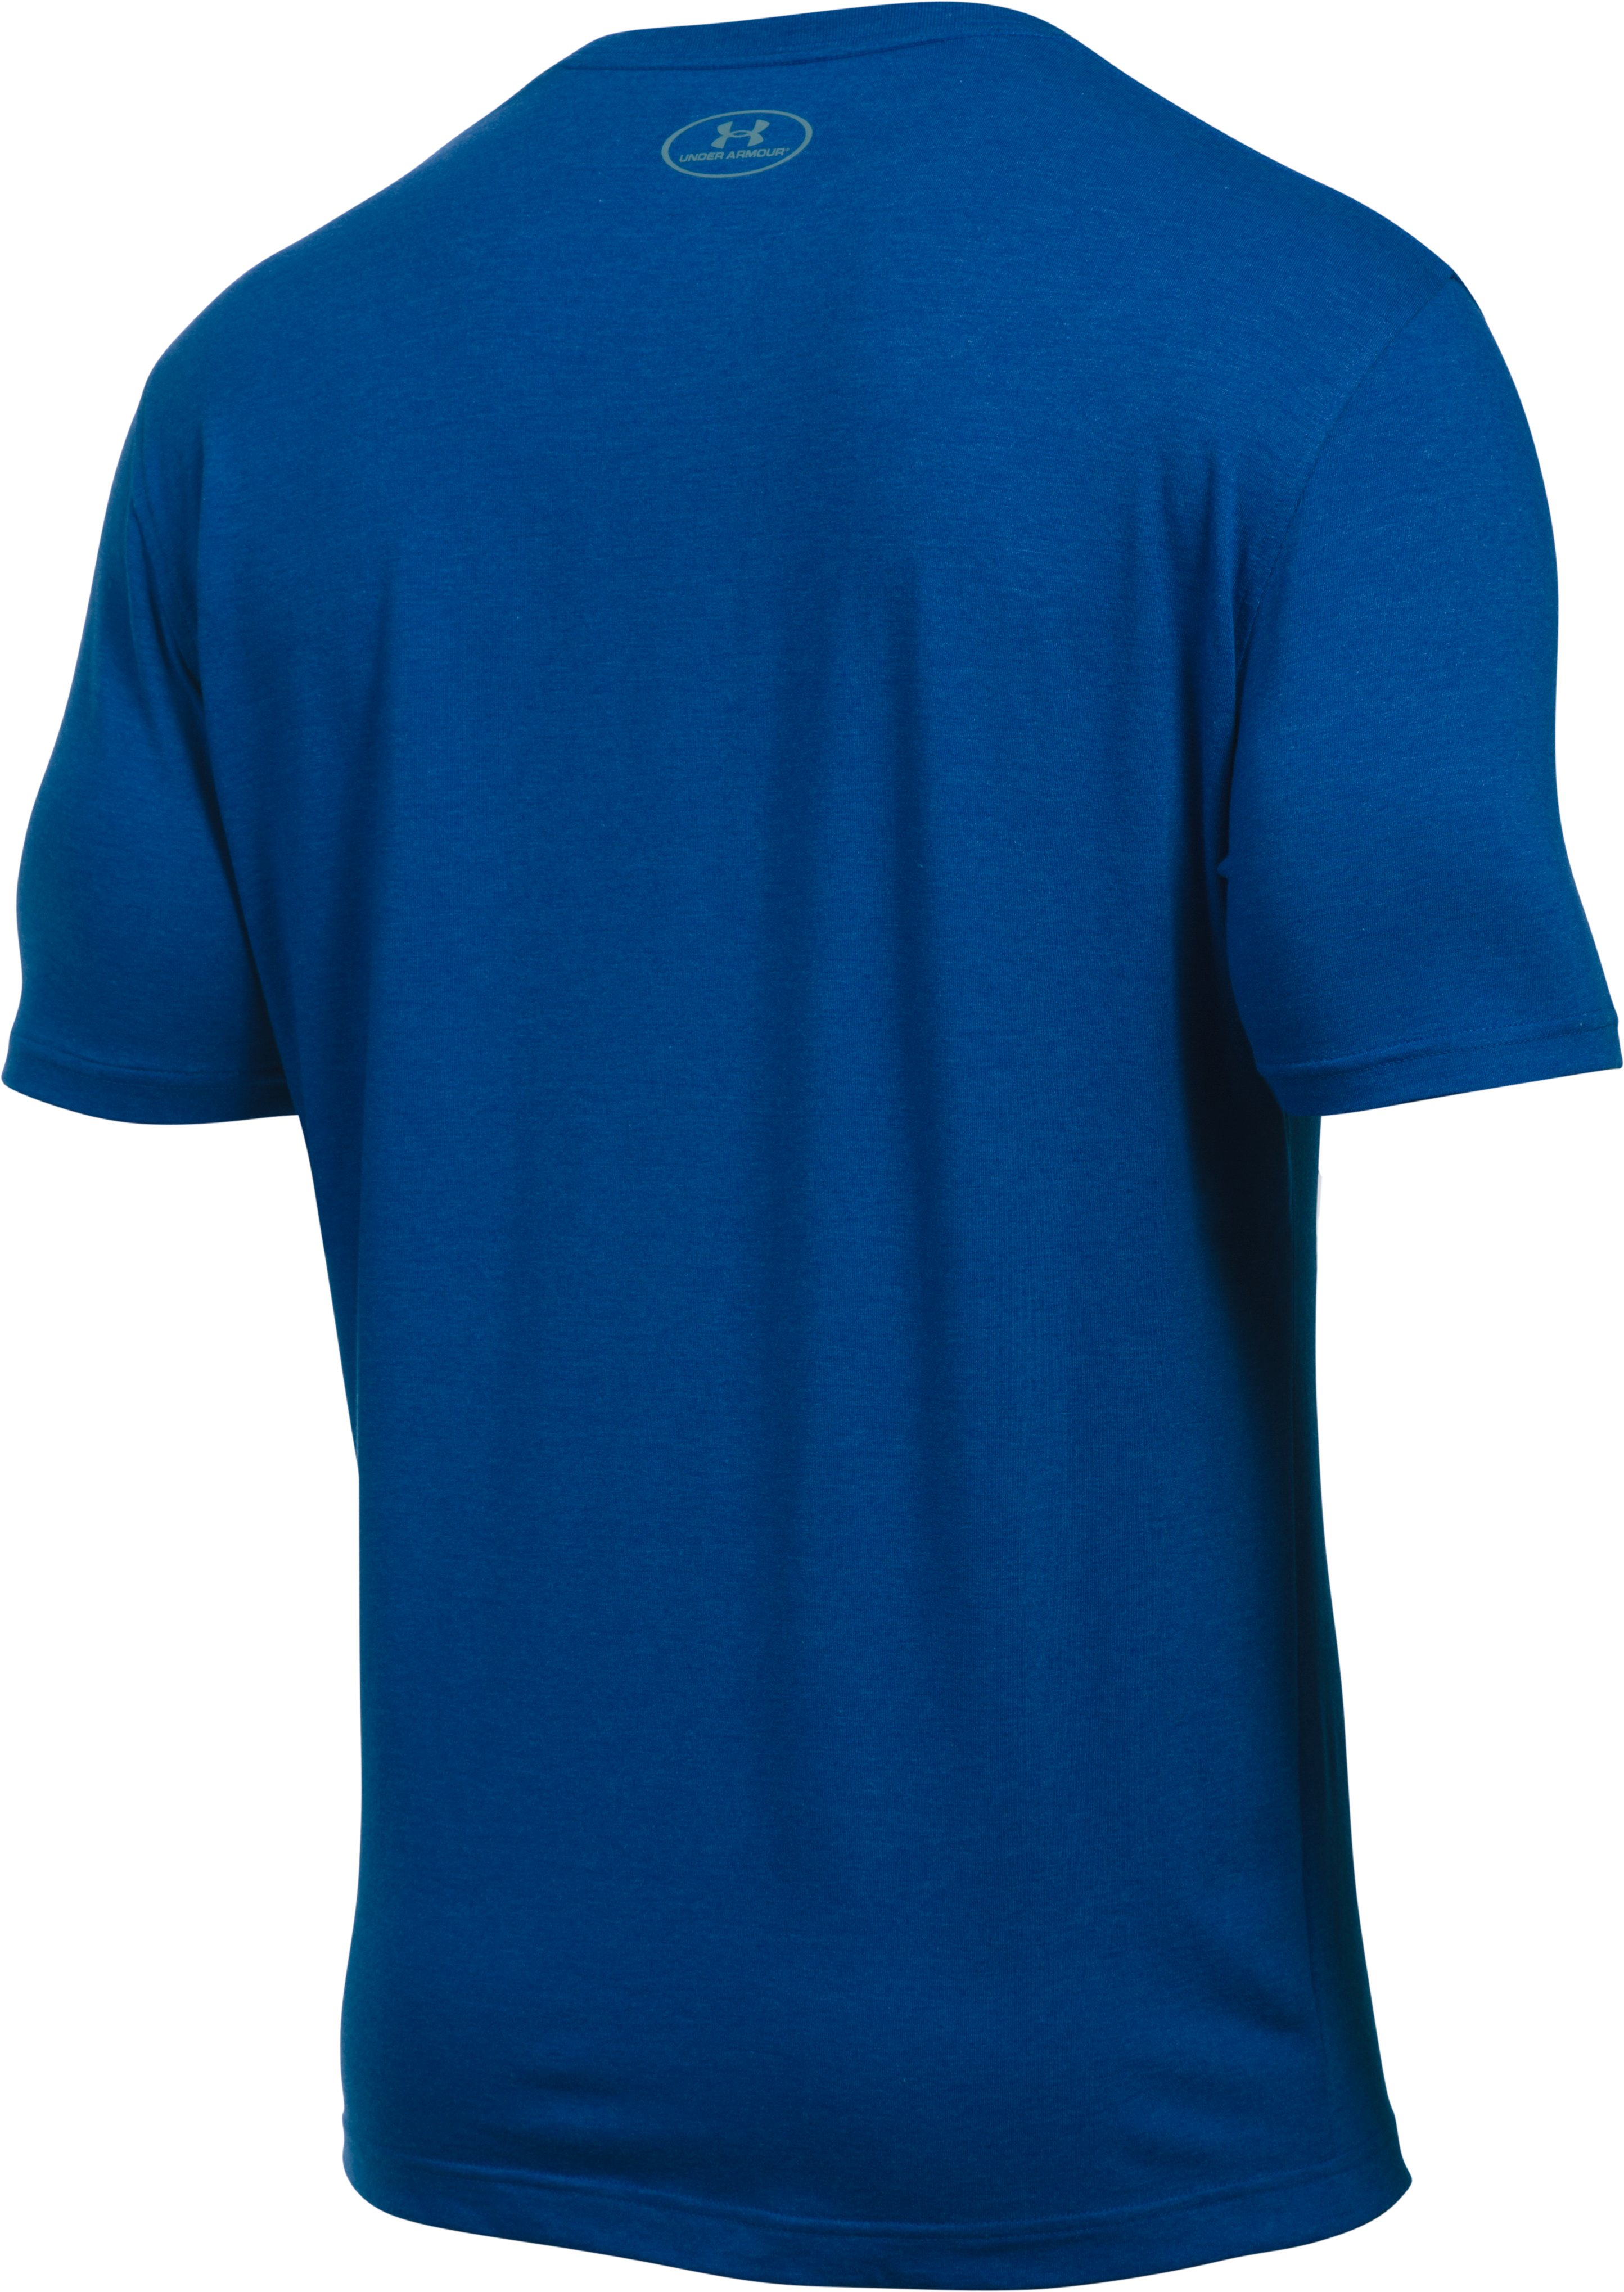 Men's SC30 Playcall T-Shirt, Royal, undefined